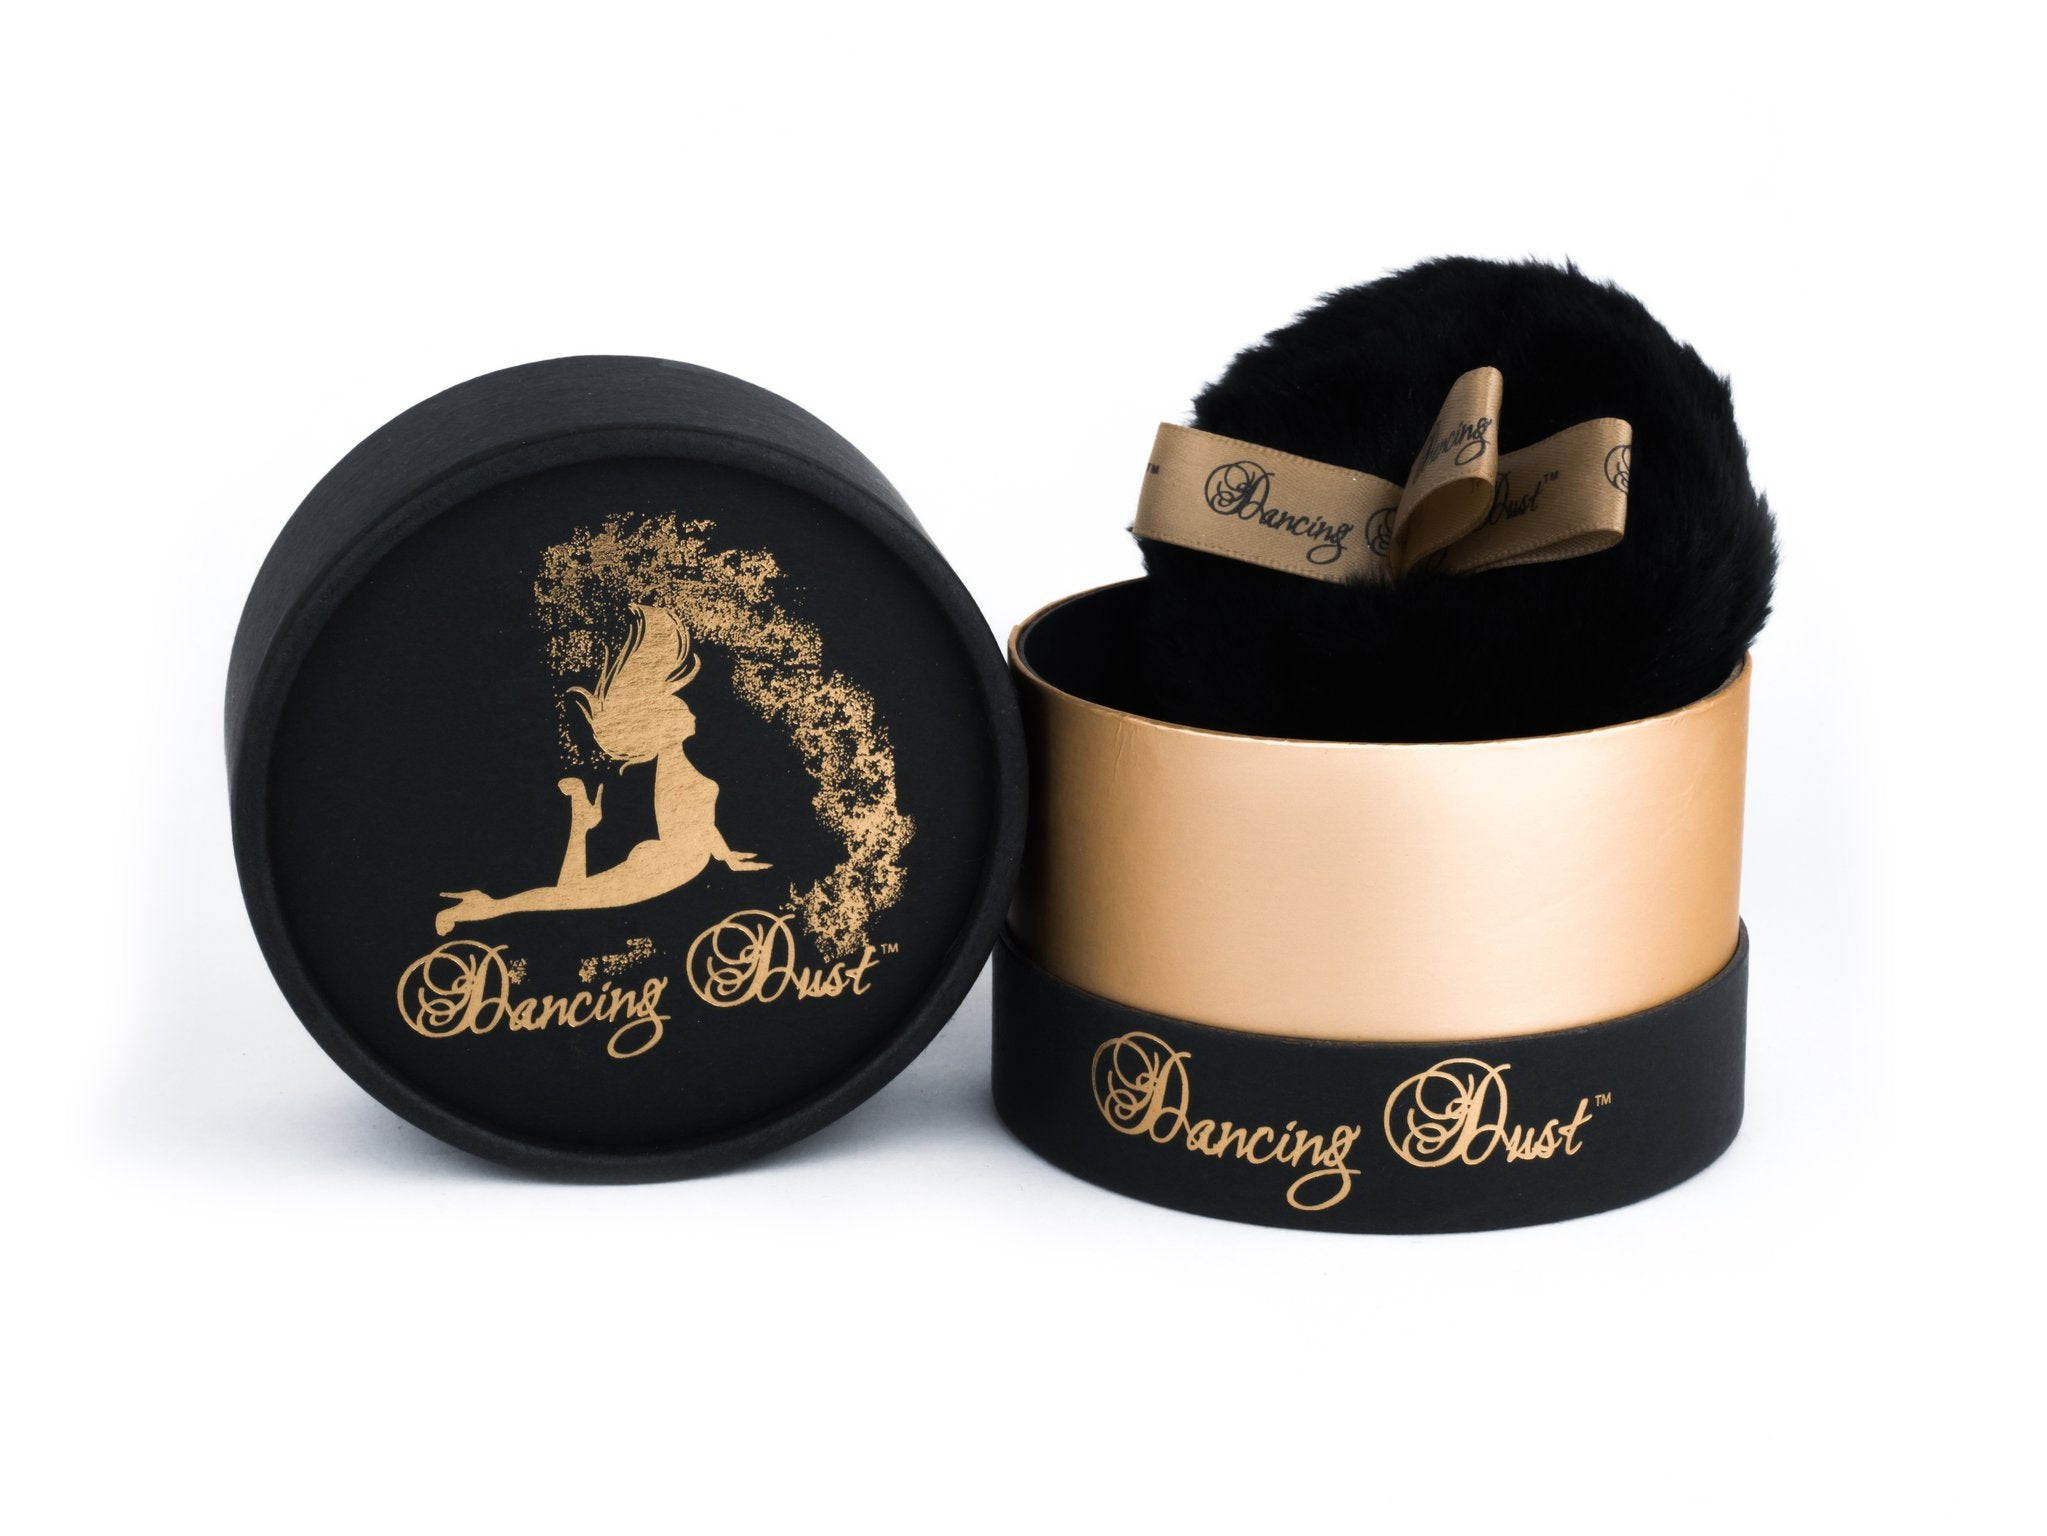 Dancing Dust- Dewy Body Shimmer - Pole inspired - Dry/Lightly perspiring skin - Light